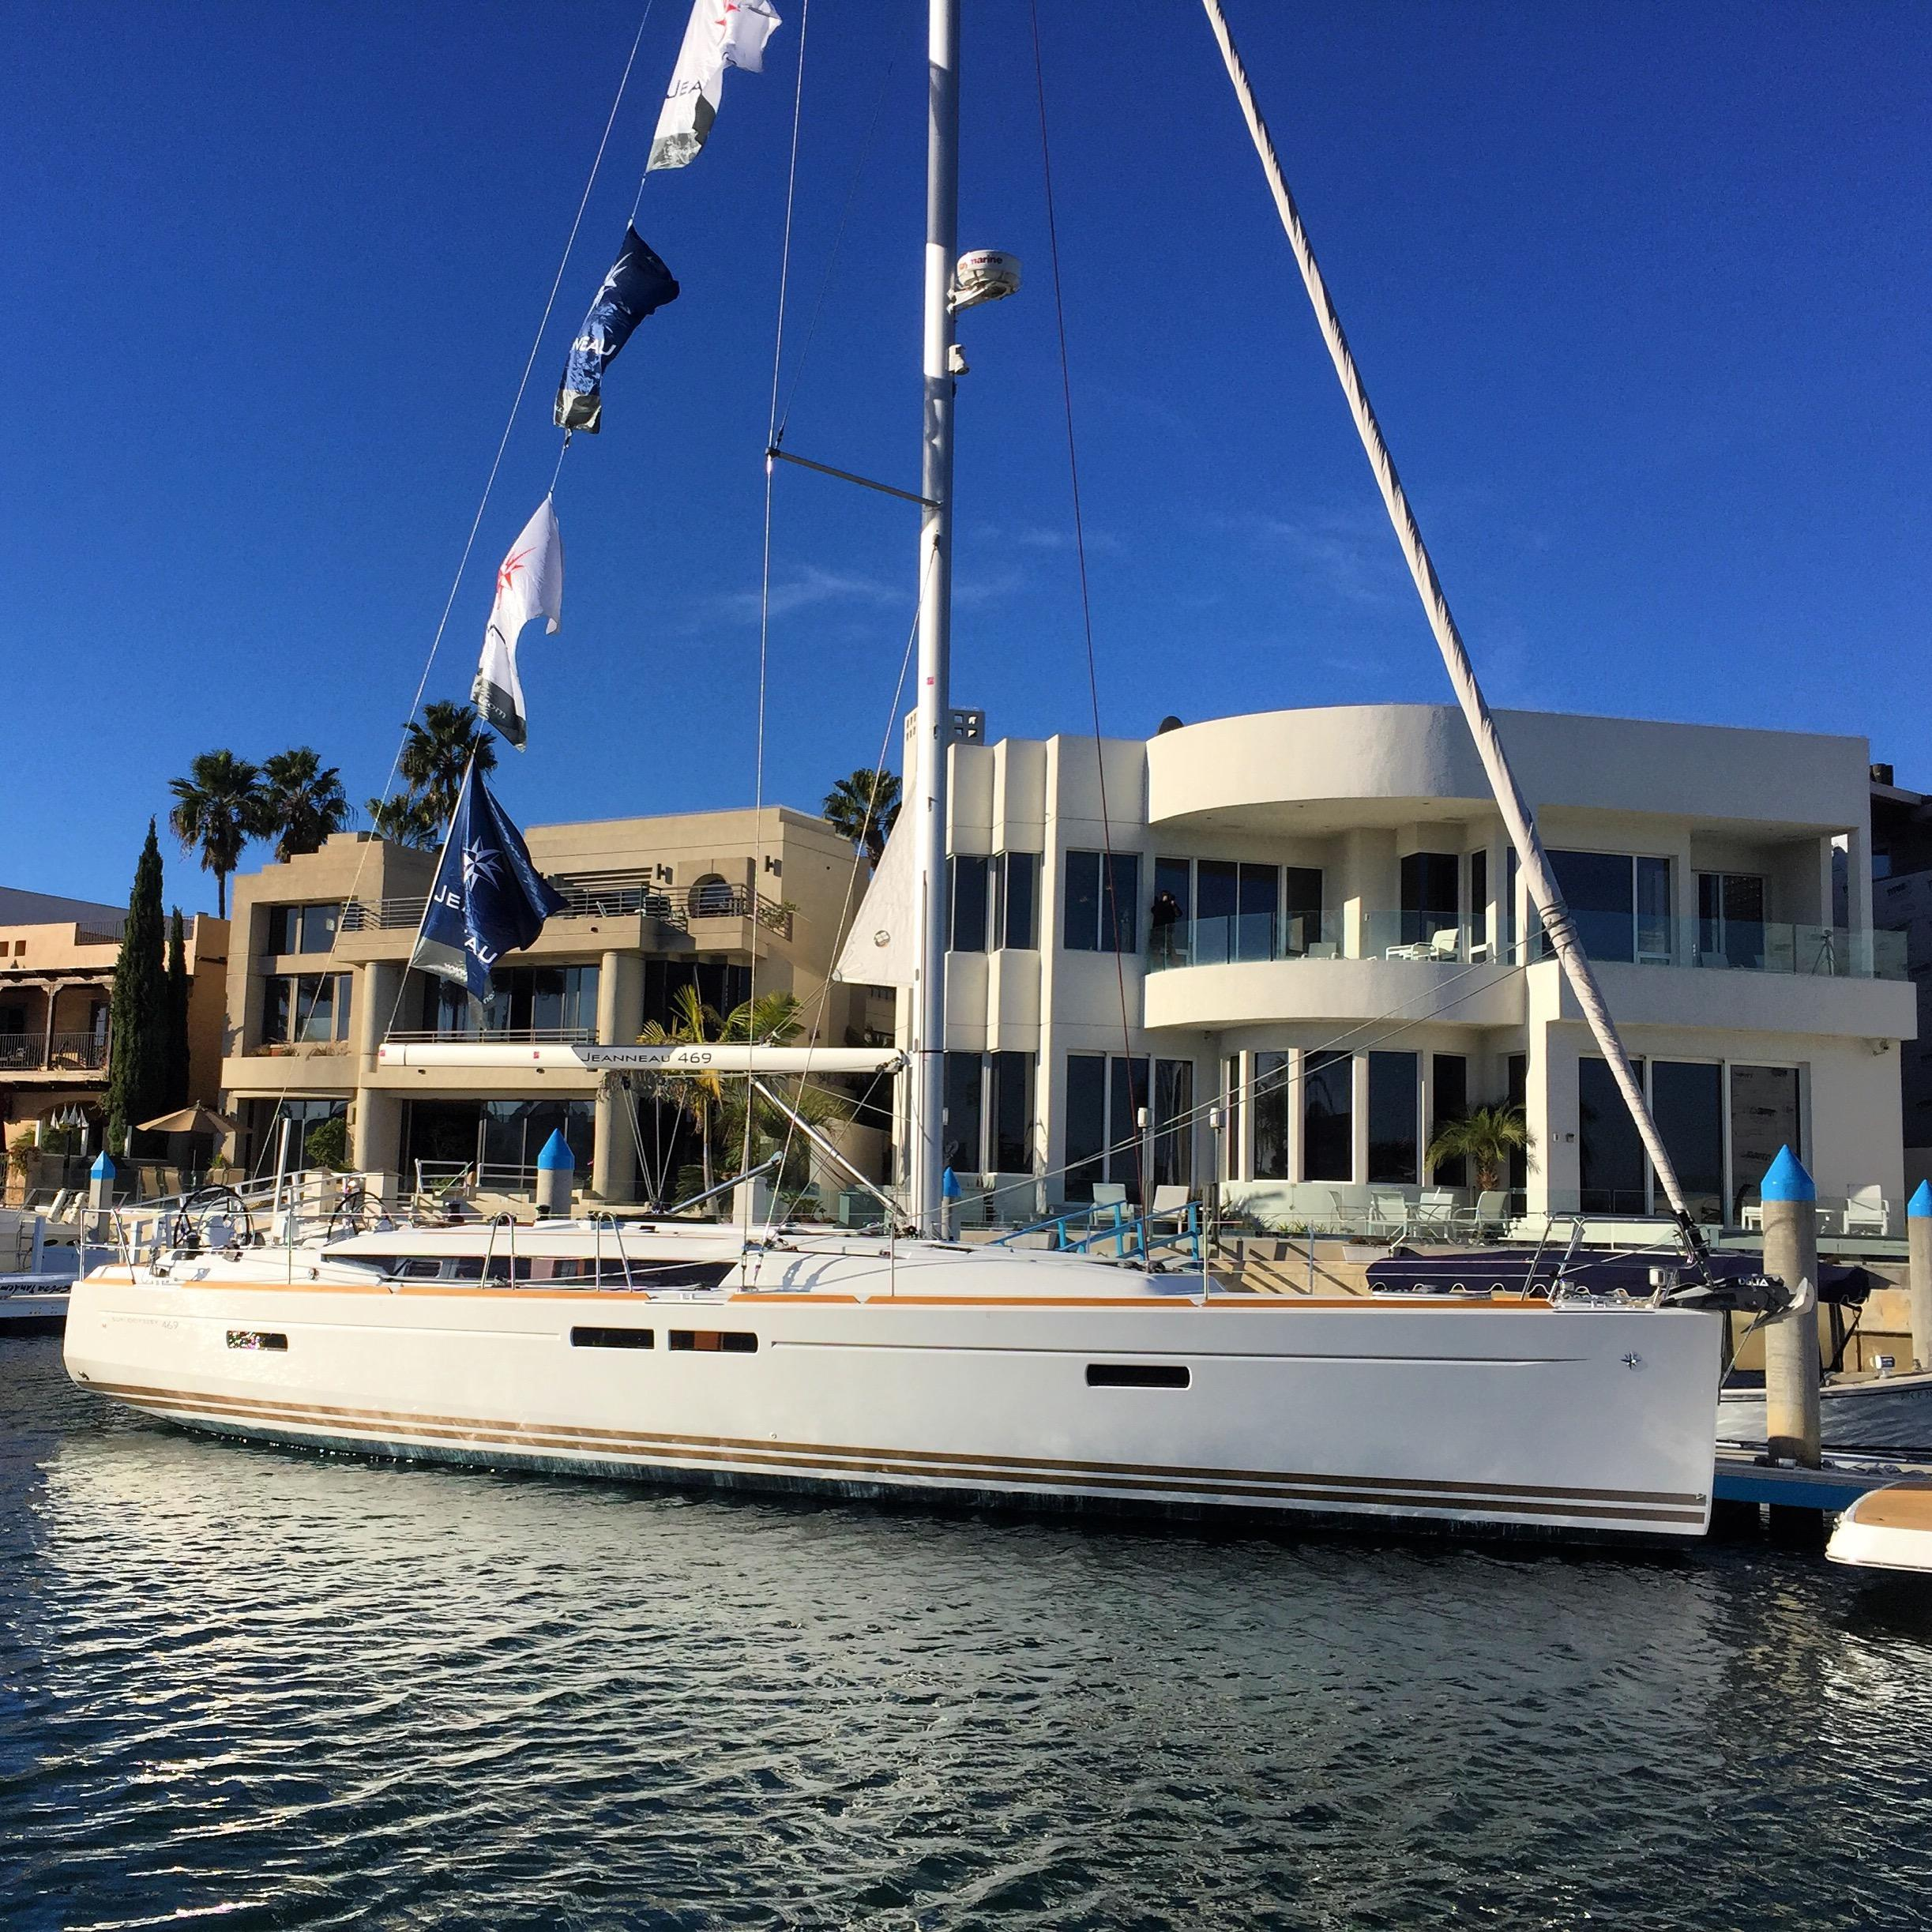 2019 jeanneau 479 sun odyssey sail new and used boats for sale